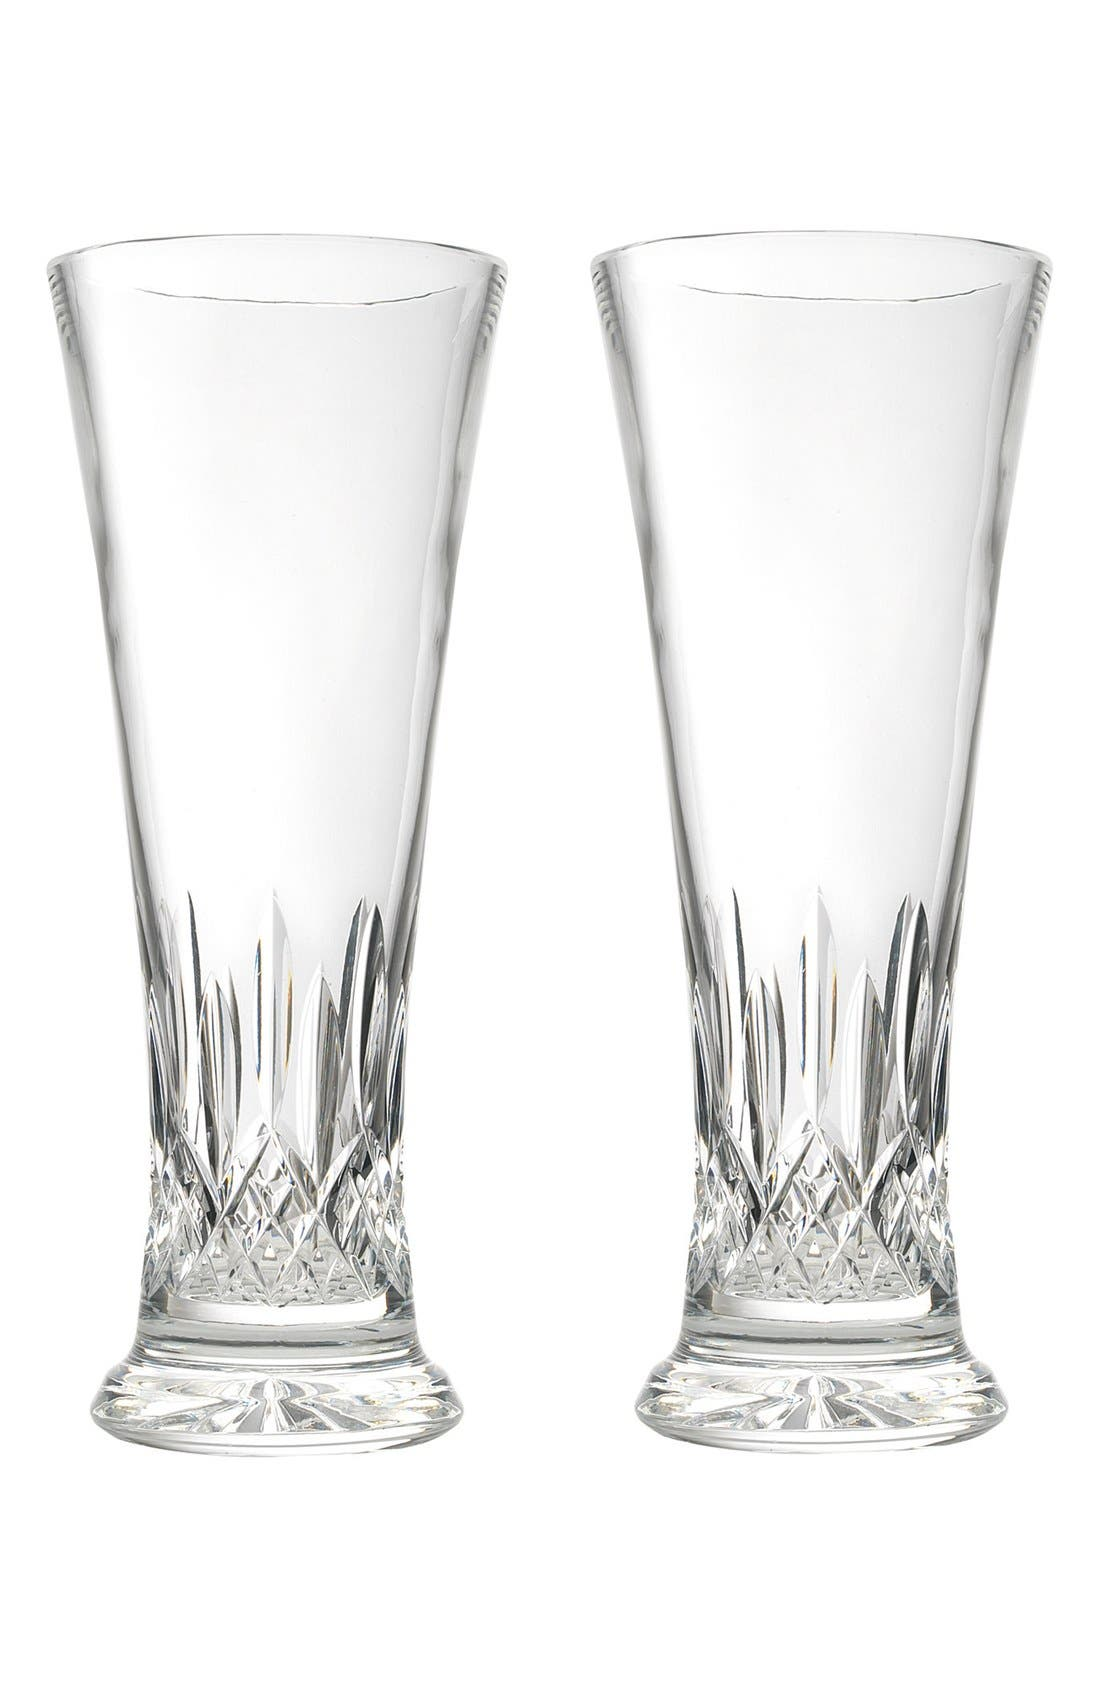 WATERFORD 'Lismore' Lead Crystal Pilsner Glasses